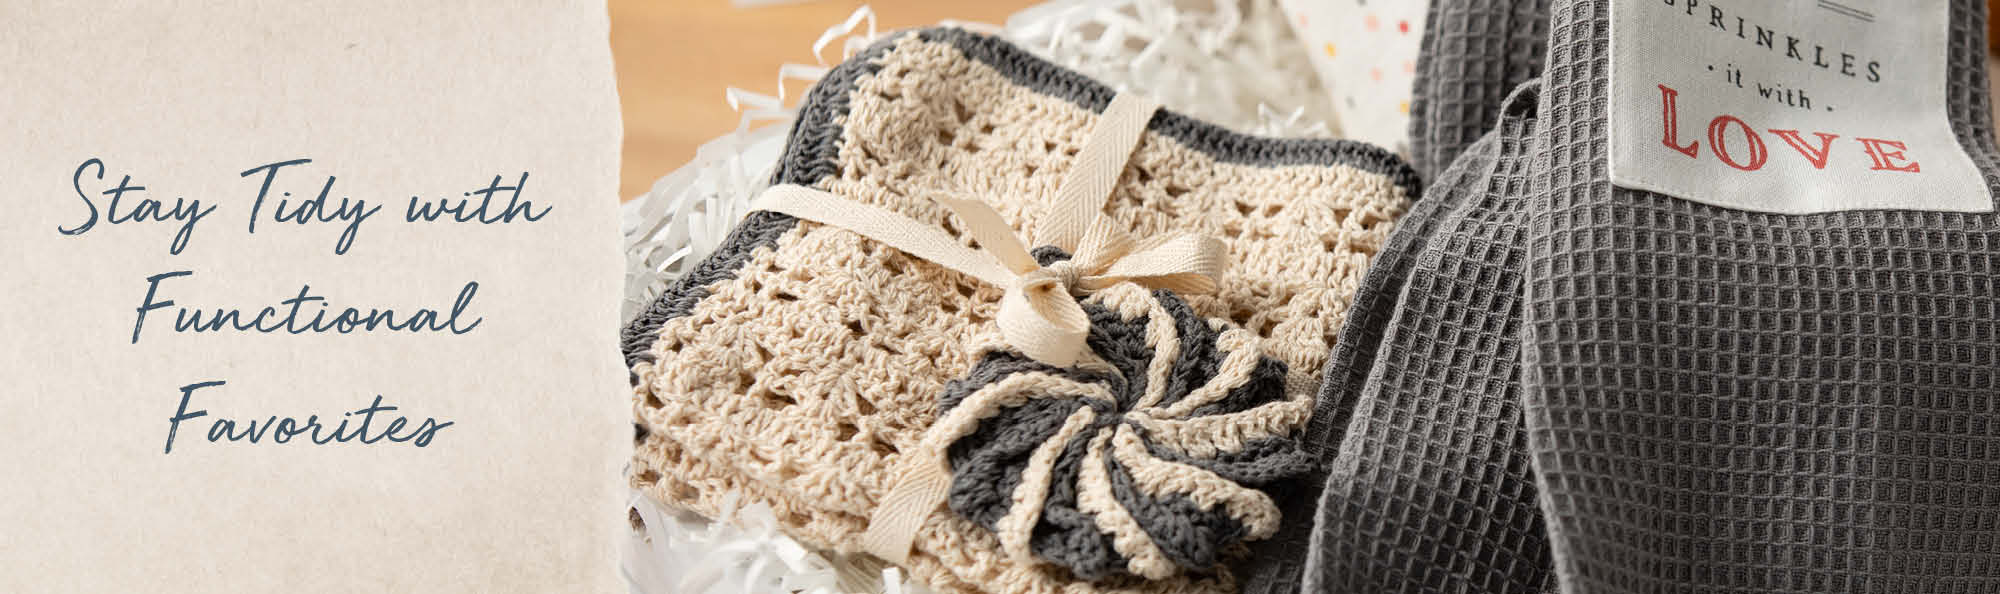 Stay Tidy with Functional Favorites. Crocheted dish cloth and scrubbie.